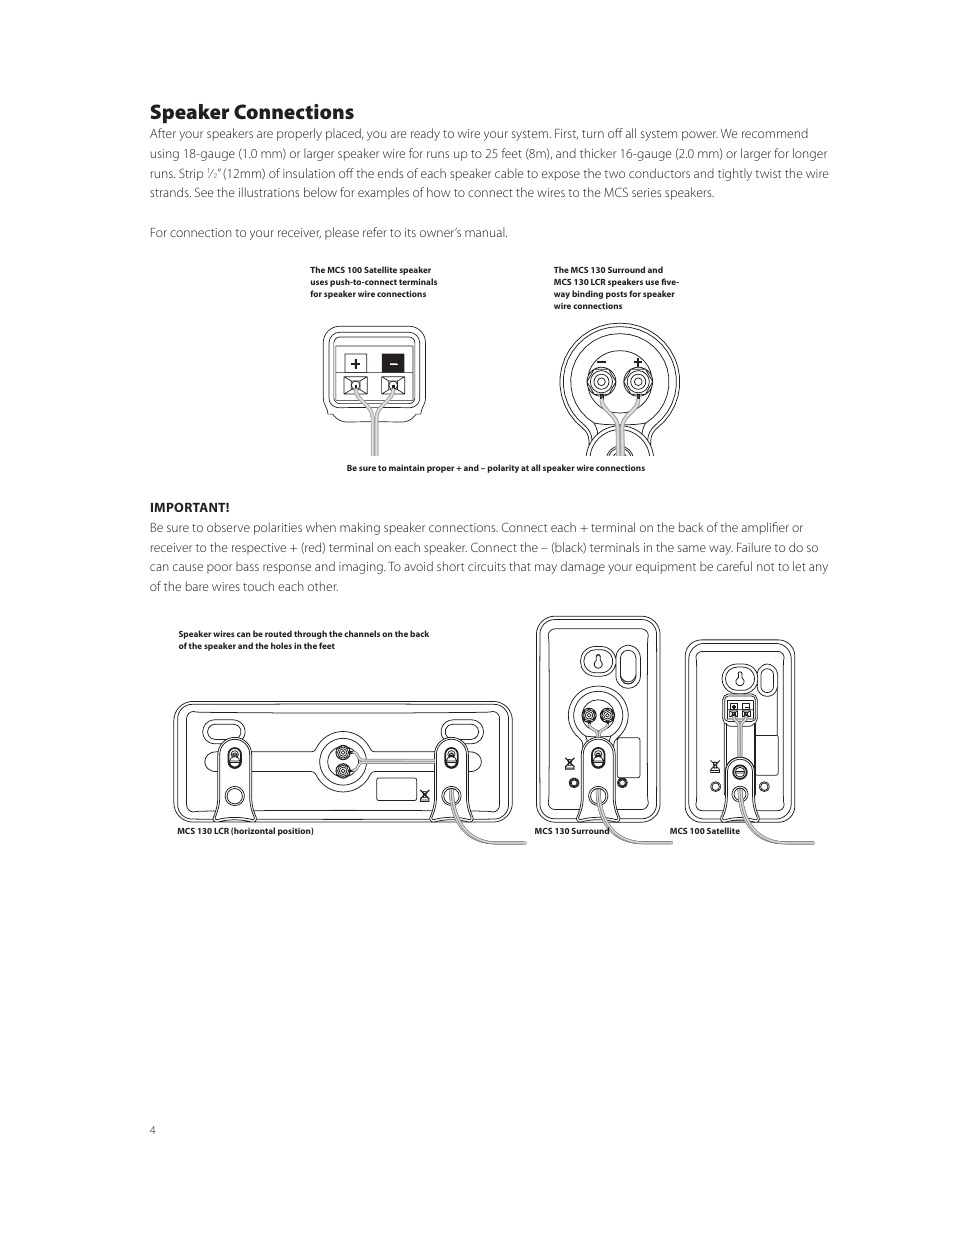 medium resolution of speaker connections boston acoustics mcs 130 surround user manual page 4 7